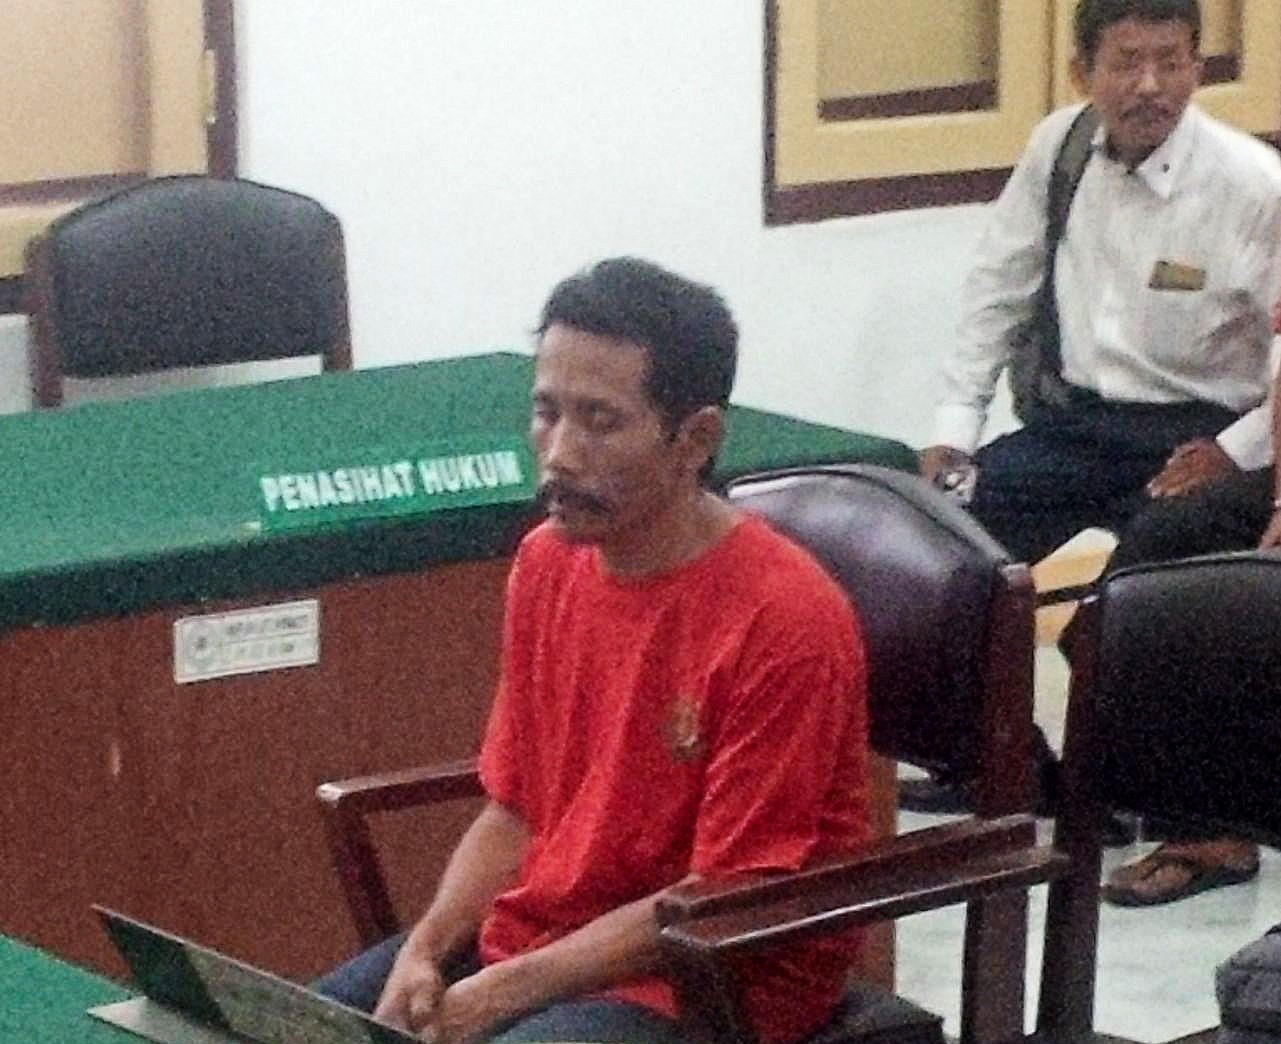 Tiger skin trader sentenced to 2 years in prison